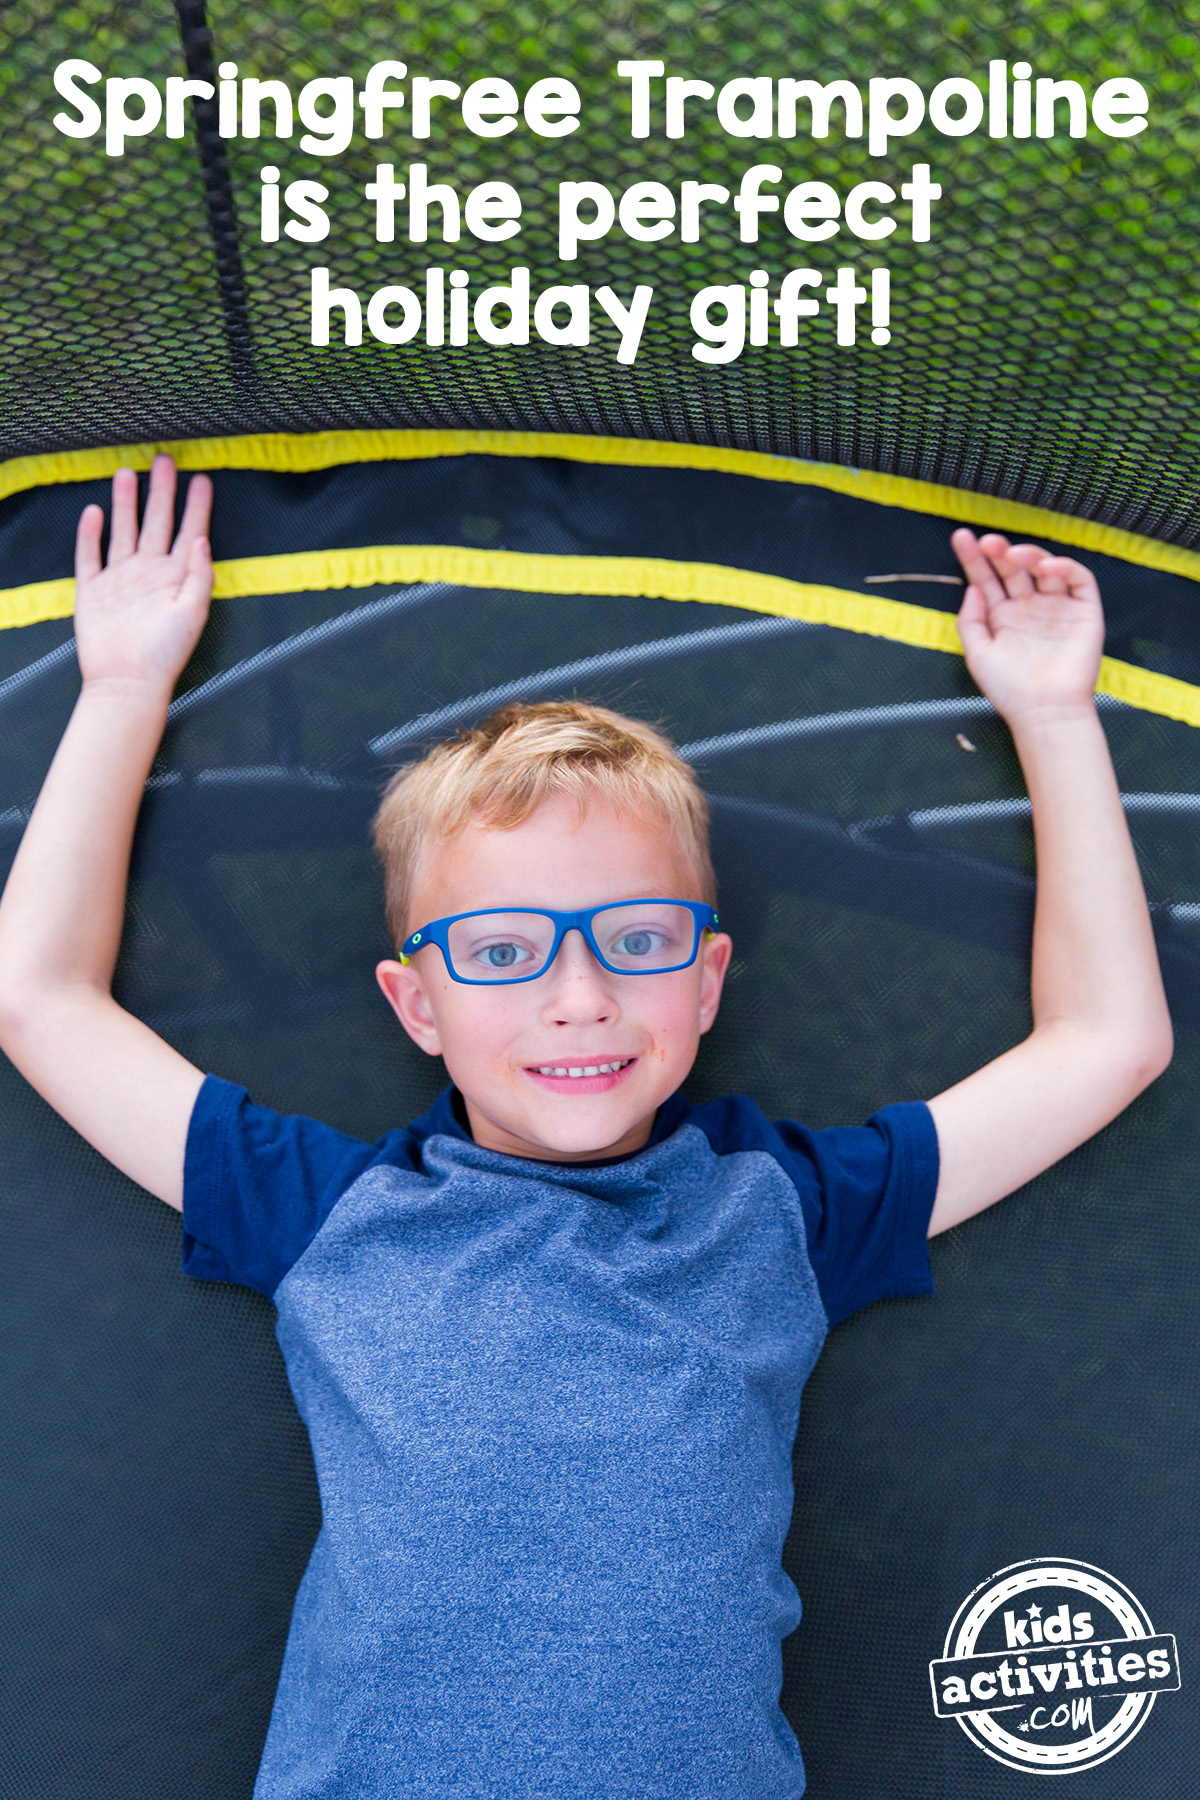 Springfree Trampoline as a holiday gift